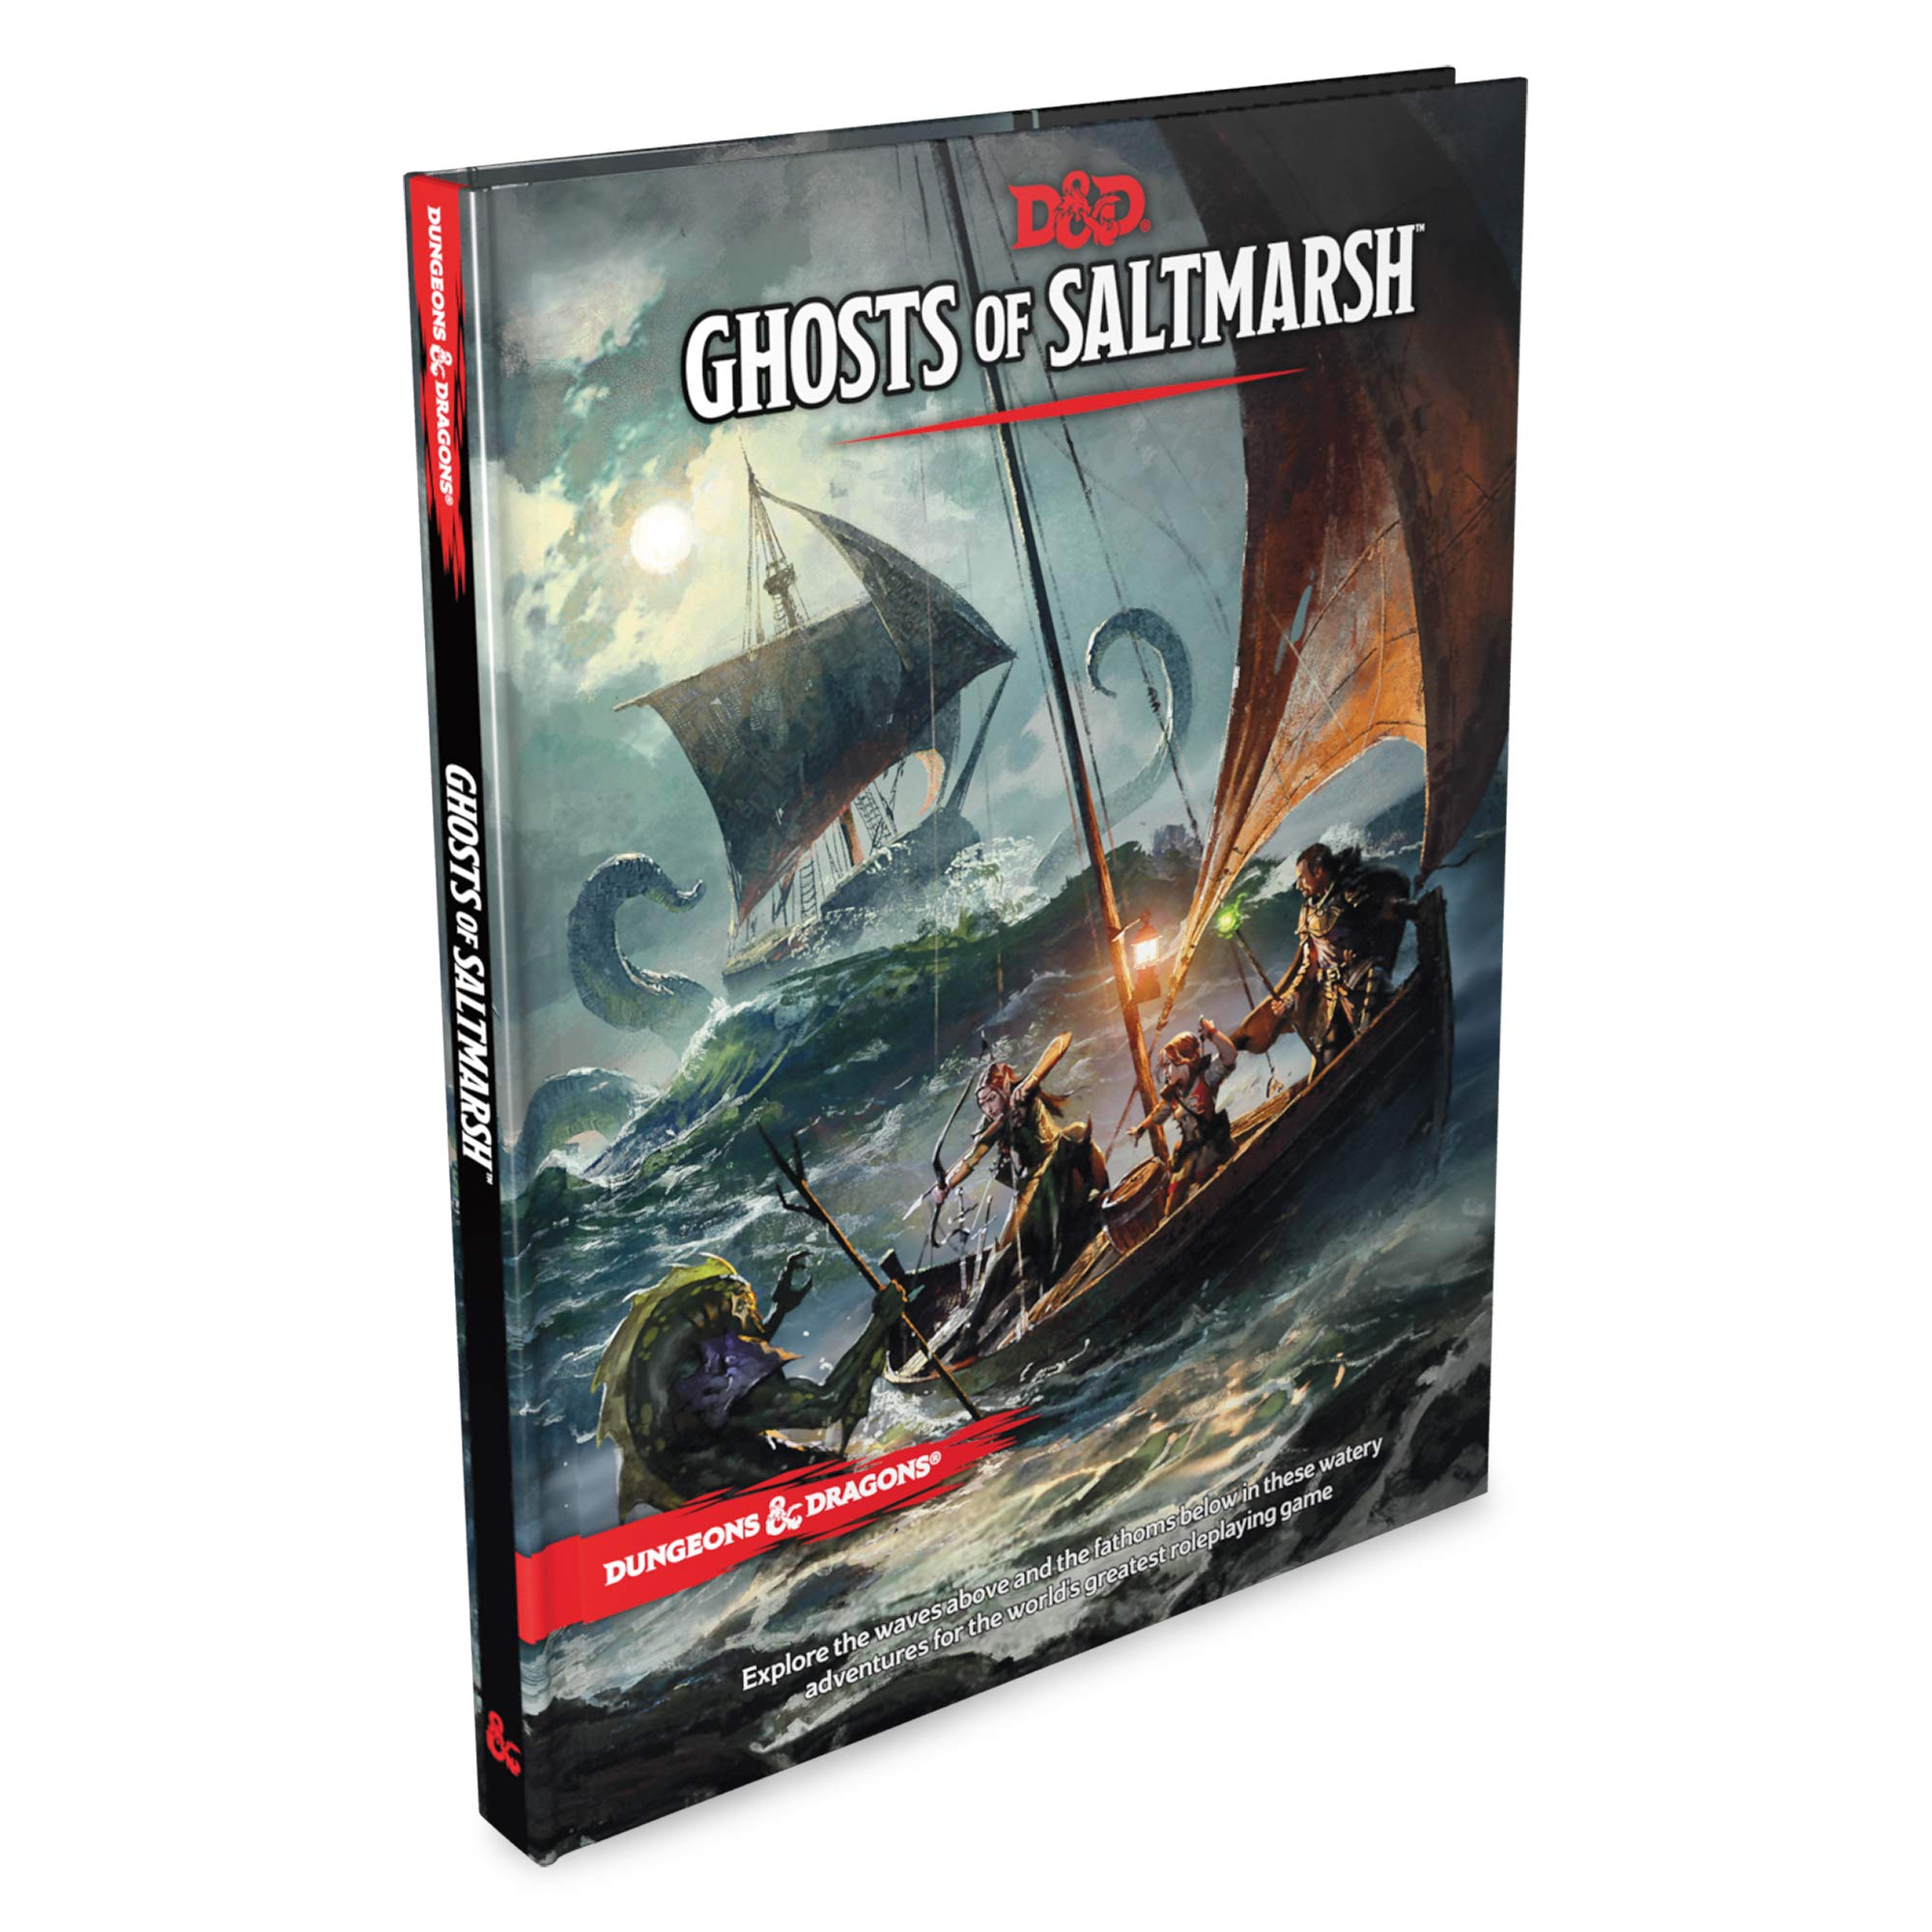 Dungeons & Dragons Ghosts of Saltmarsh Hardcover Book (D&D